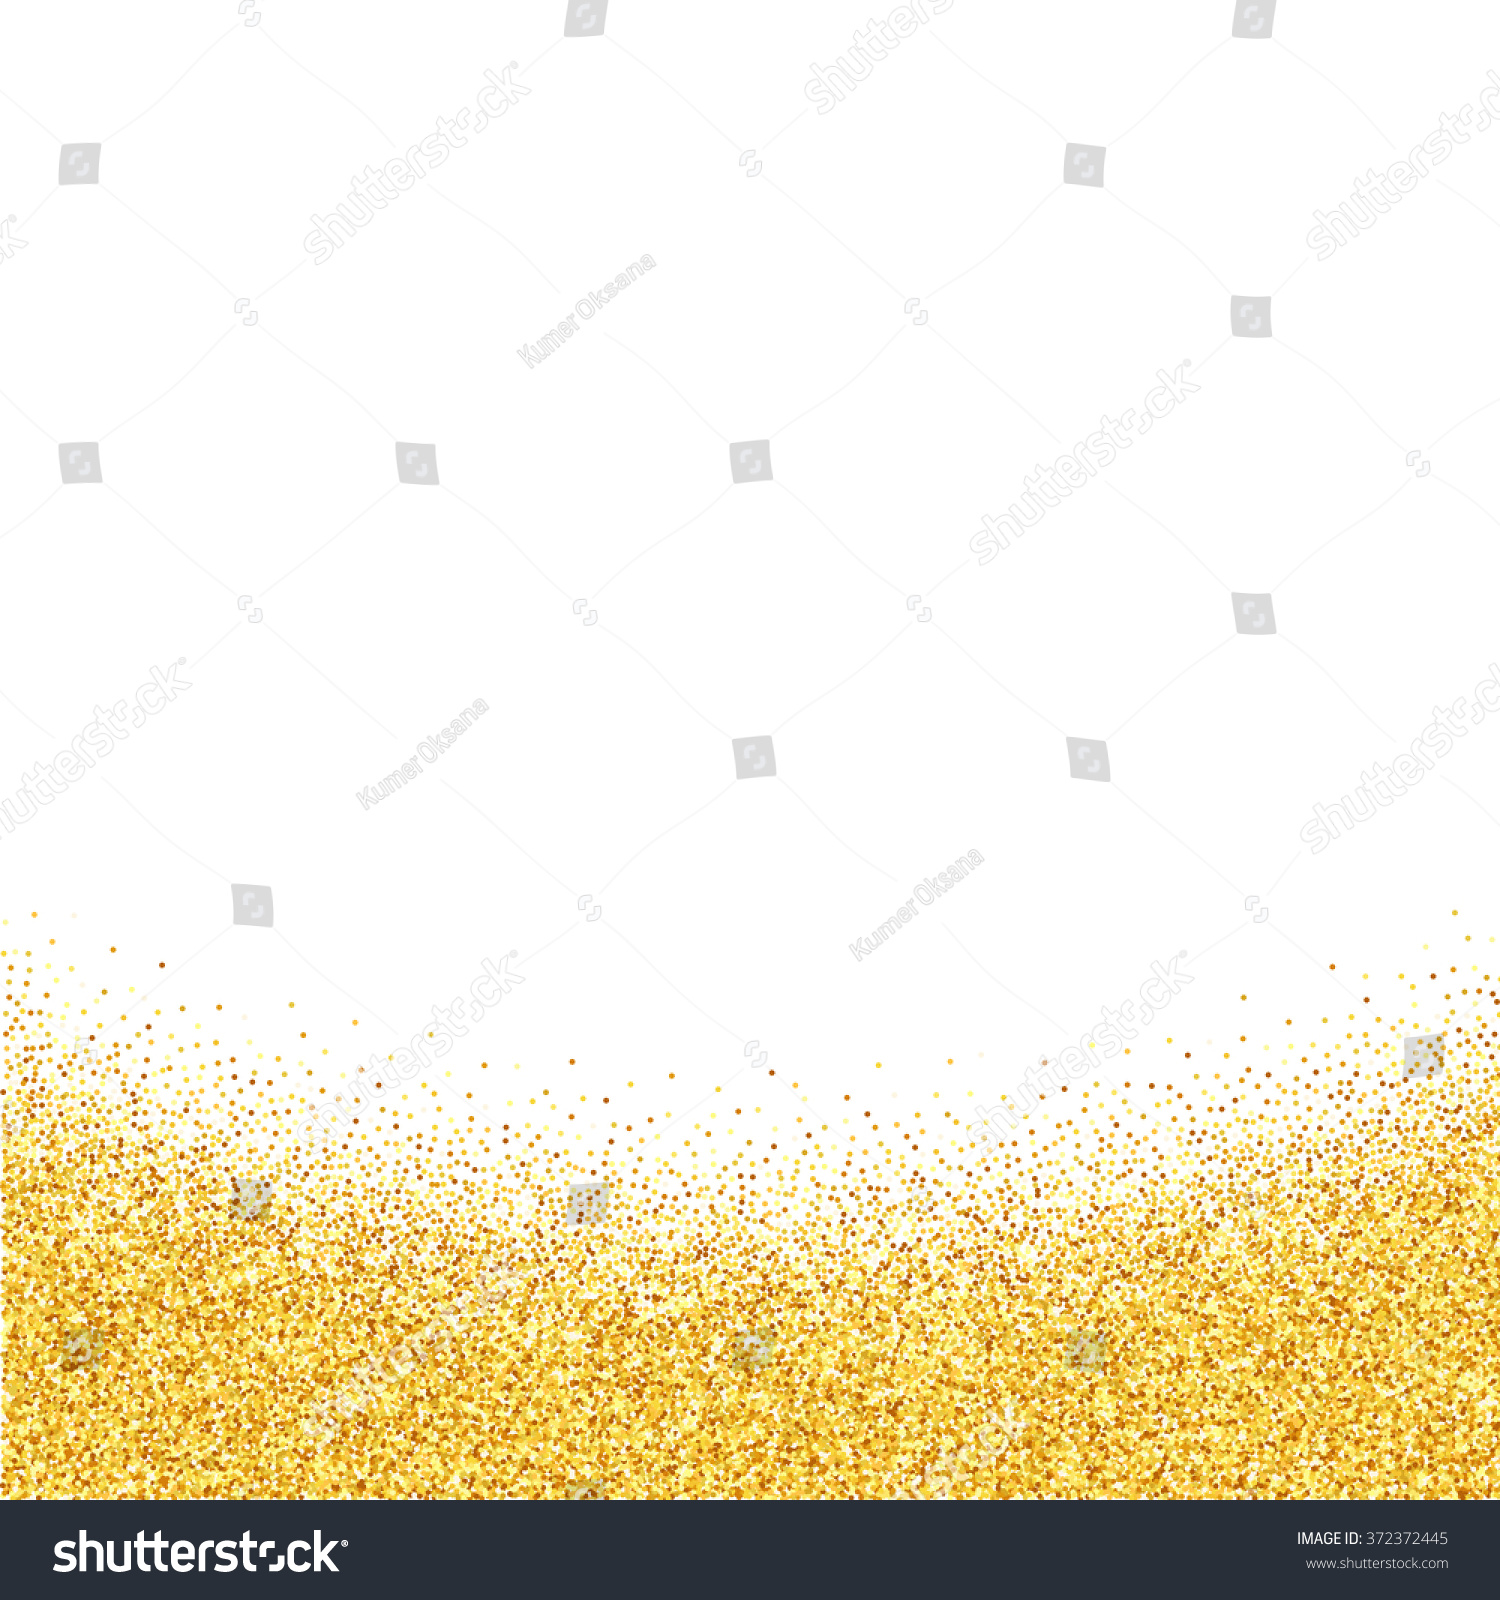 Gold glitter bright vector transparent background golden sparkles - Vector Gold Glitter Abstract Background Golden Sparkles On White Background Design Template